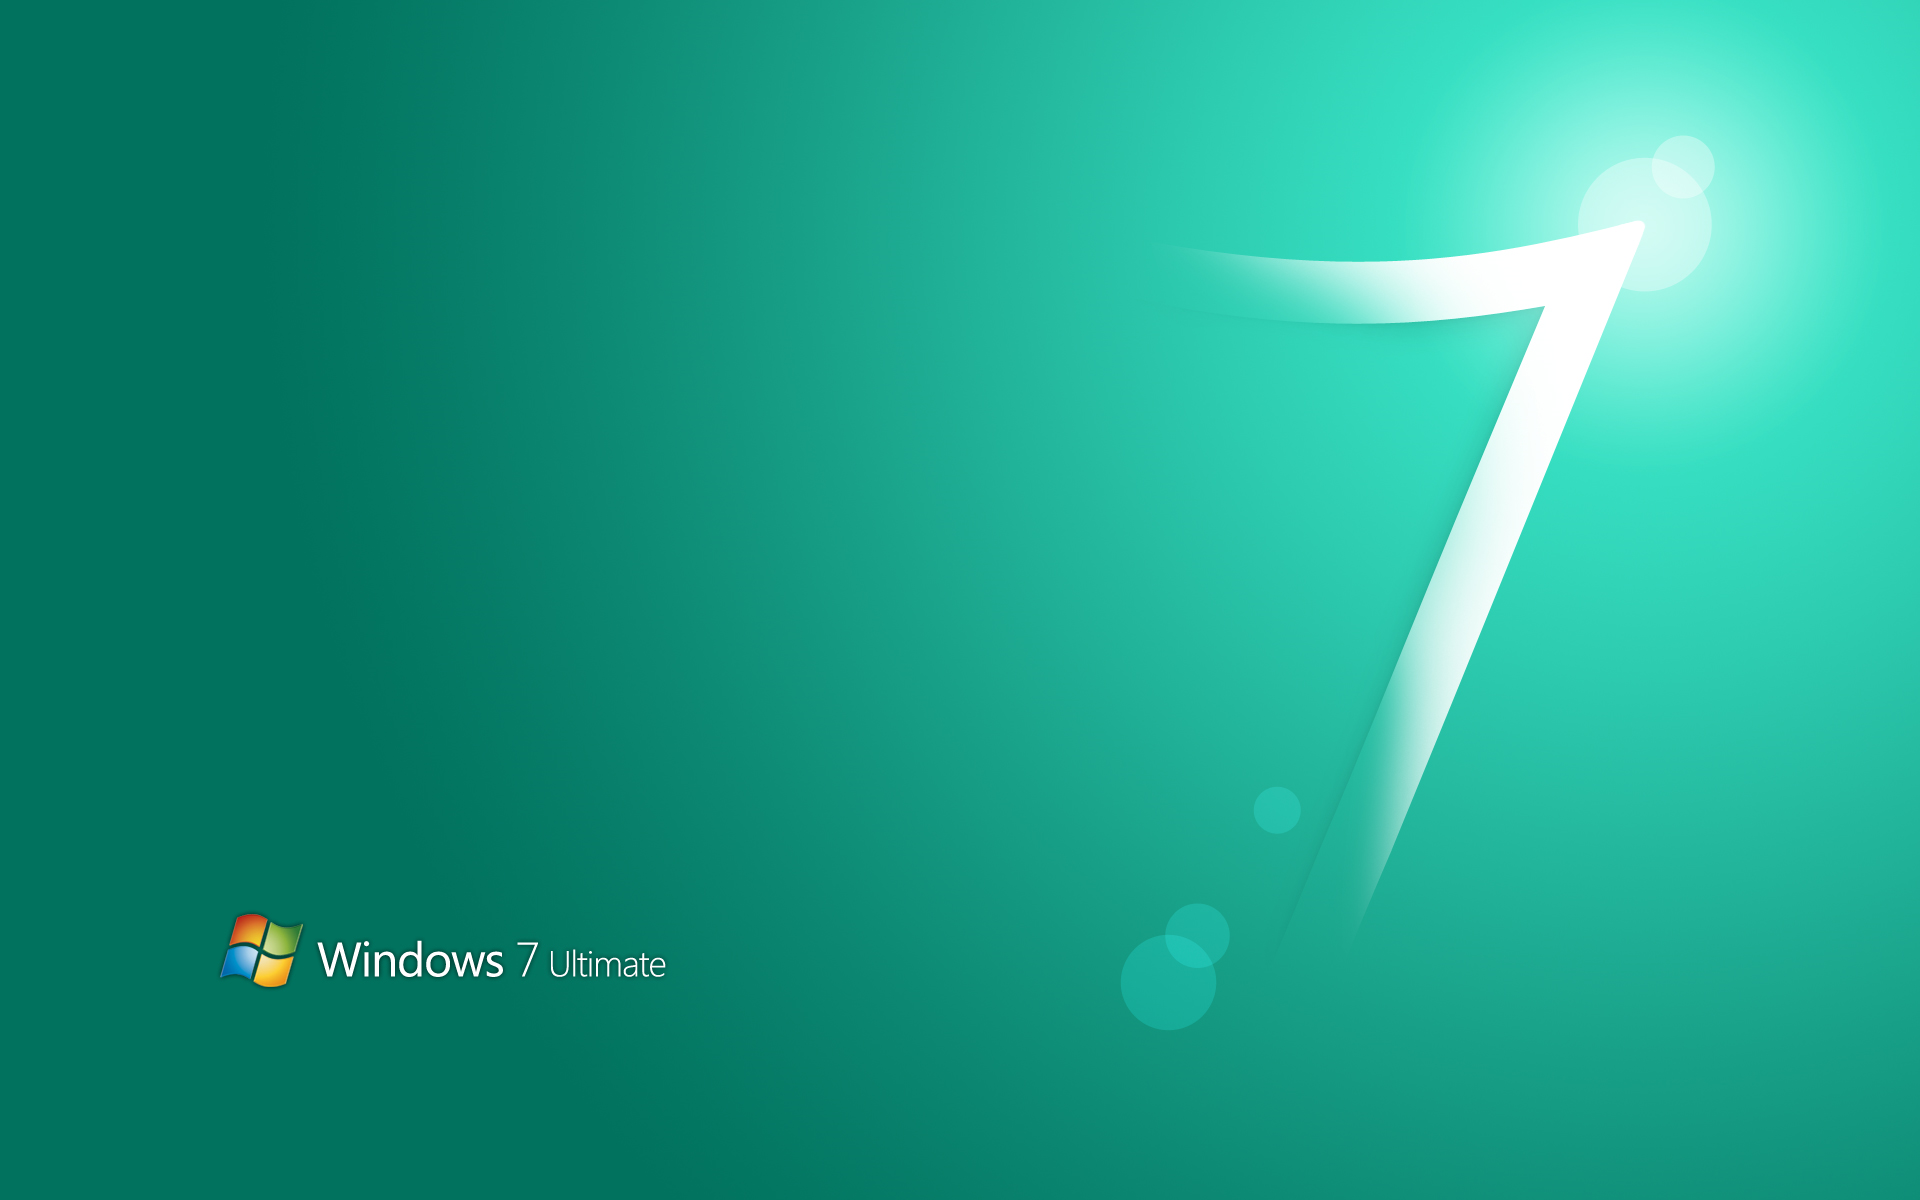 Windows 7 Wallpaper Pack  Inspired by the New 7